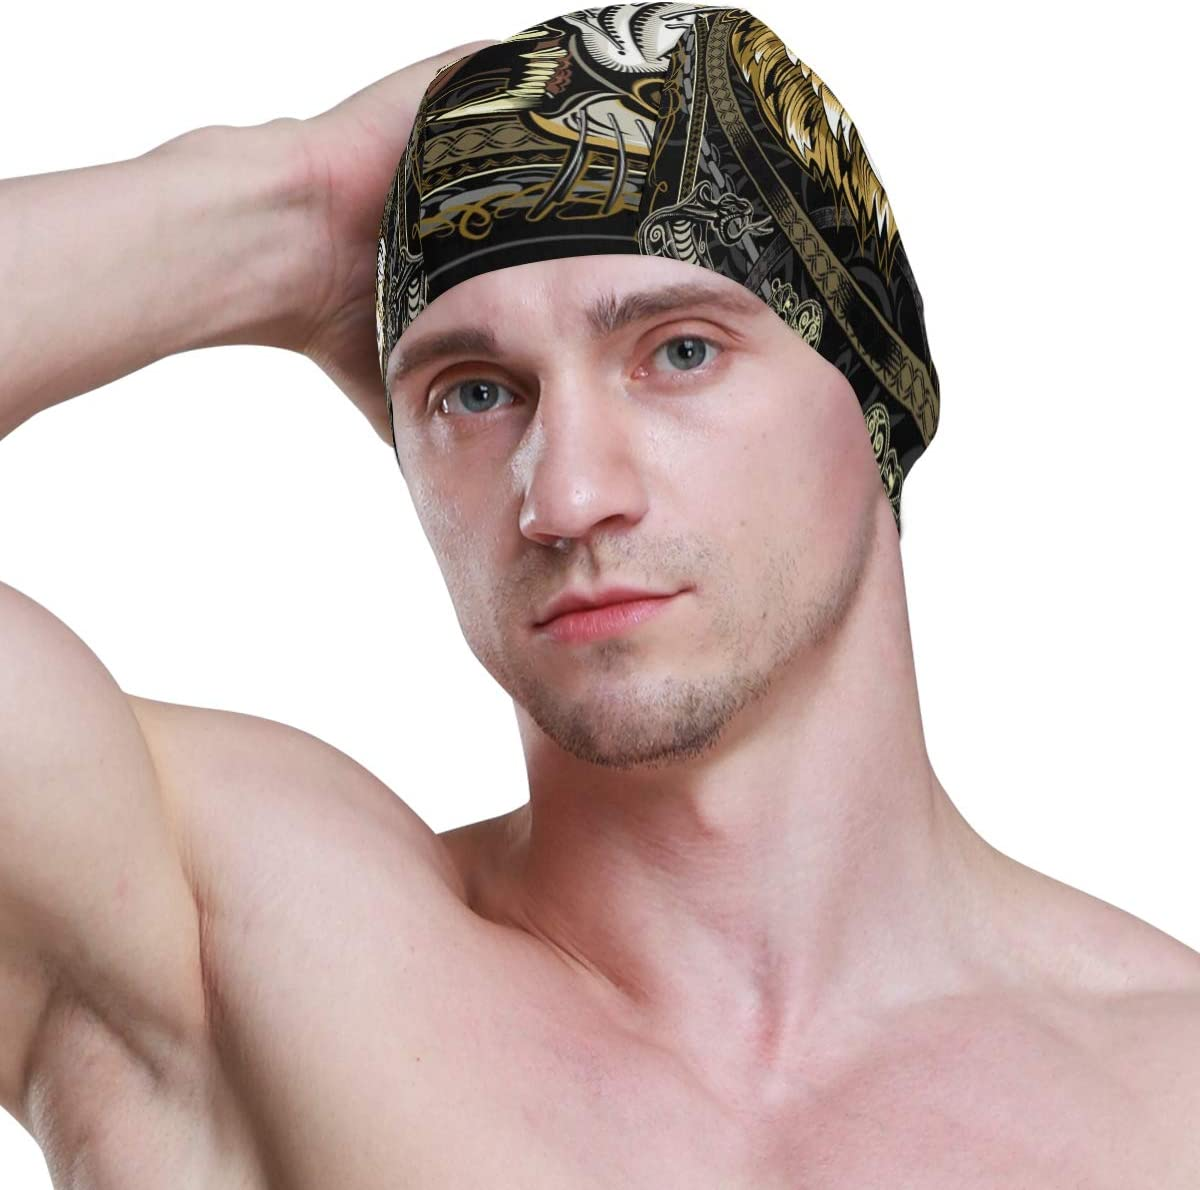 Swim Caps Cute Cartoon Animal Tiger Face Hipster Crown Swimming Cap Hat Waterproof Bathing Shower Hair Cover for Adult Men Women Youth Girls Boys